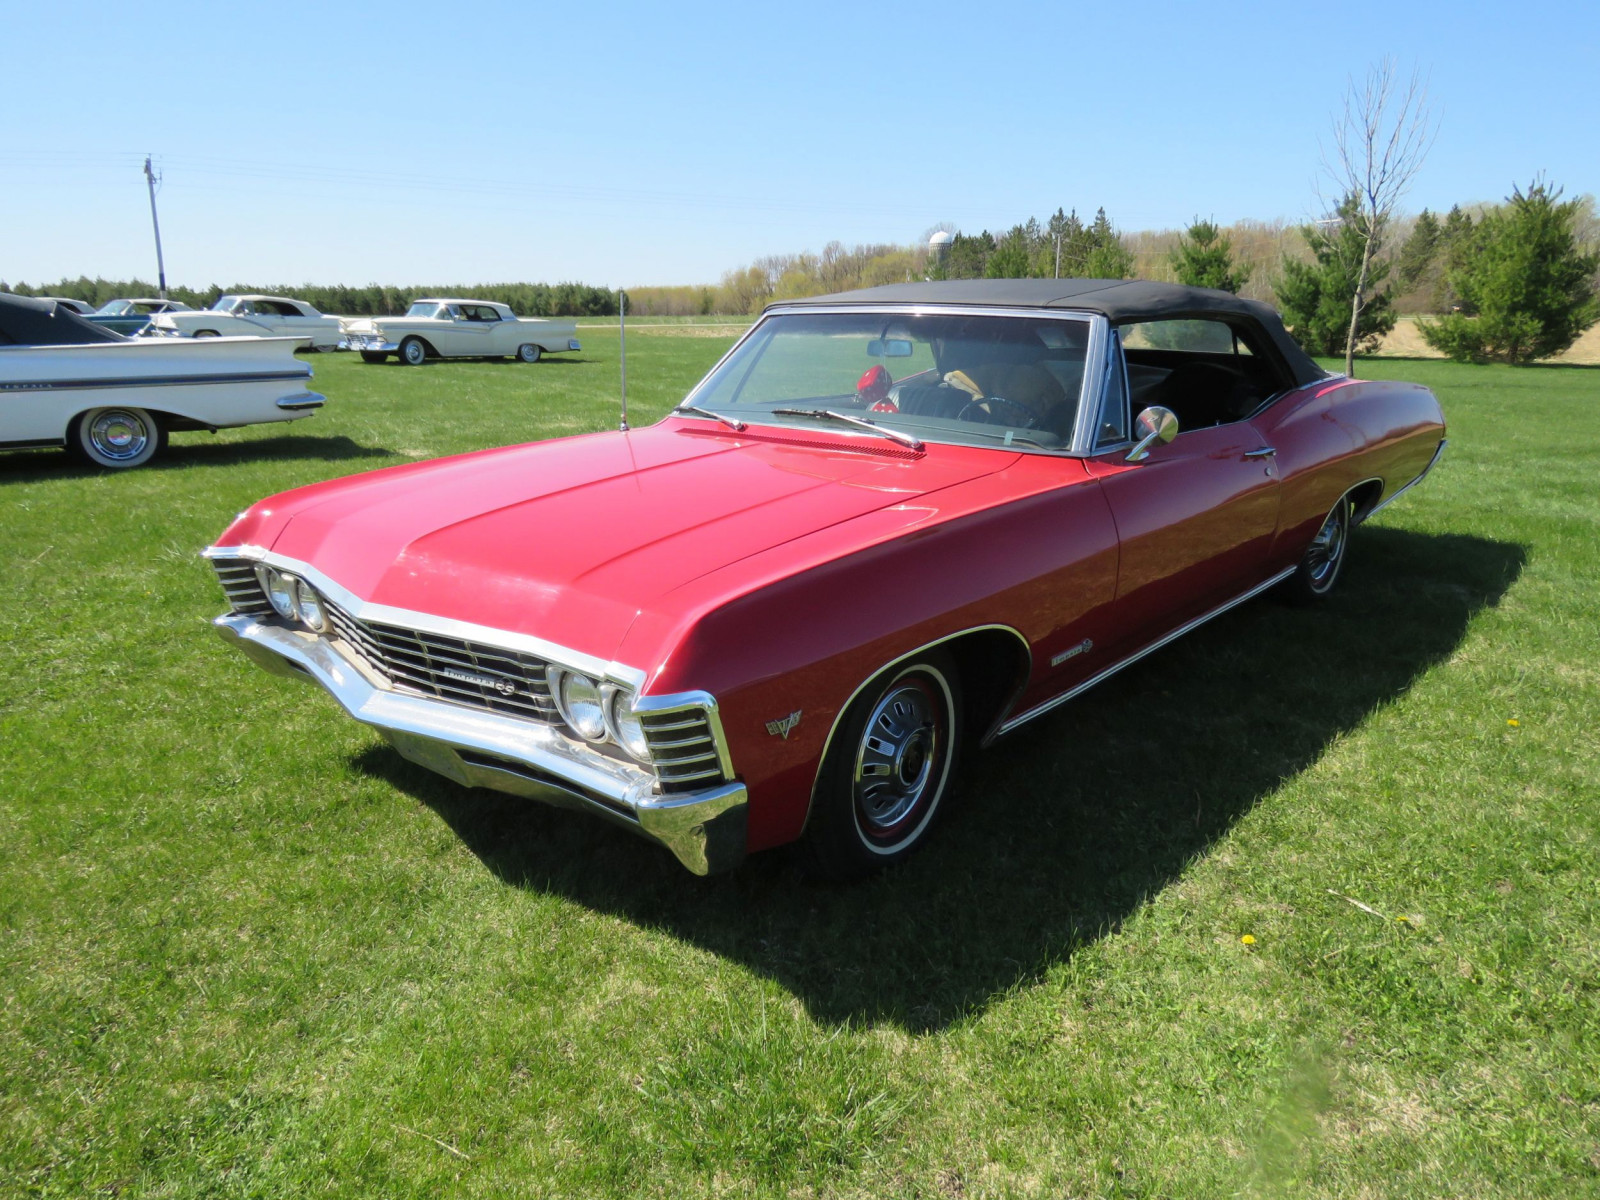 1967 Chevrolet Impala SS convertible - Image 3